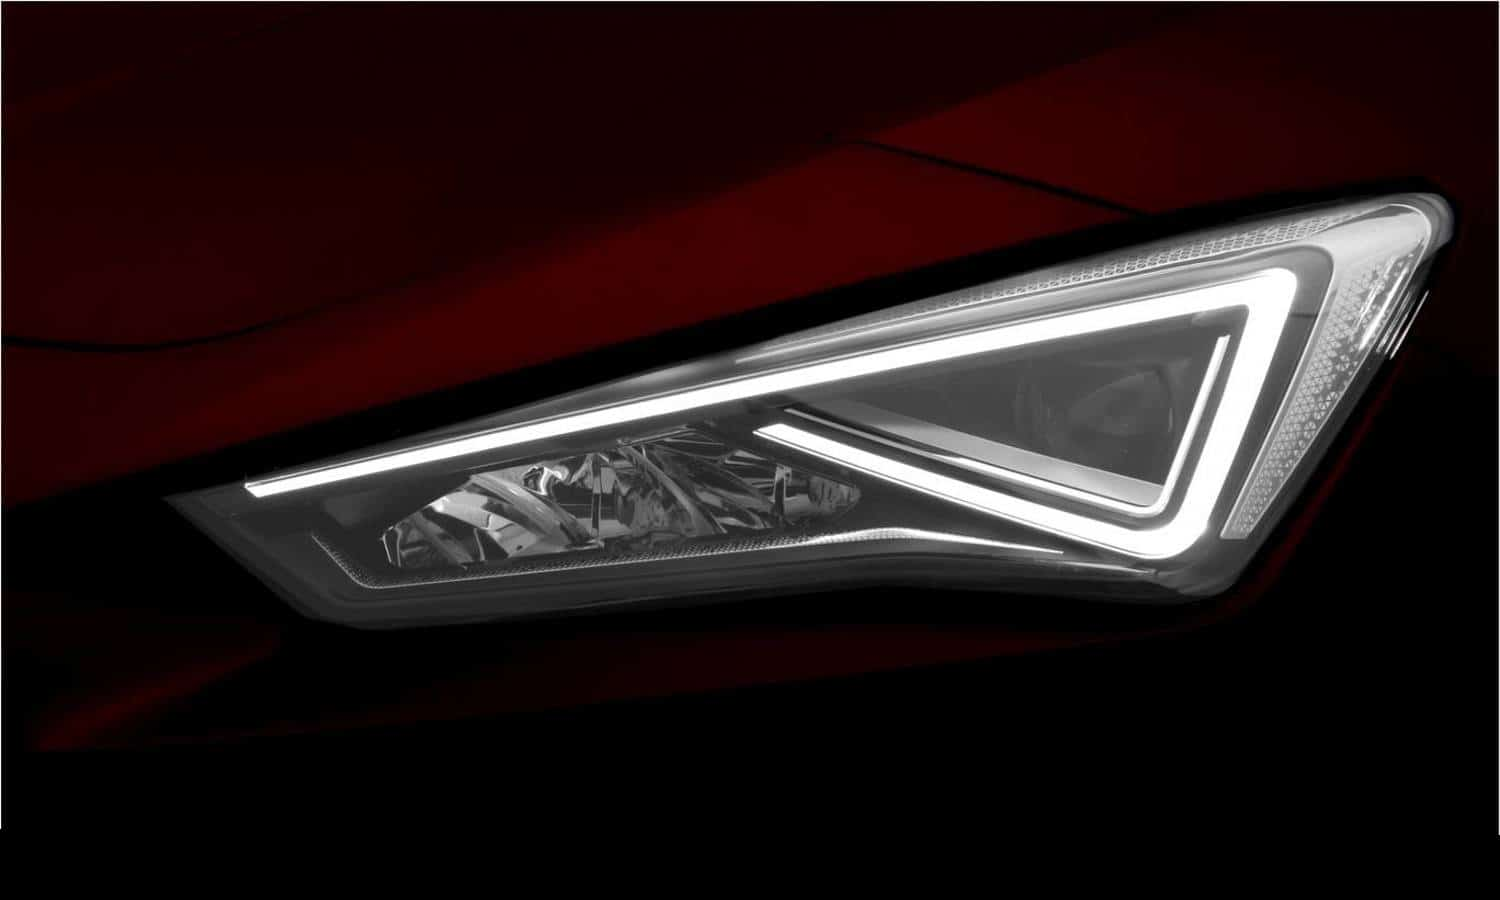 New Seat León lights the way in the compact segment